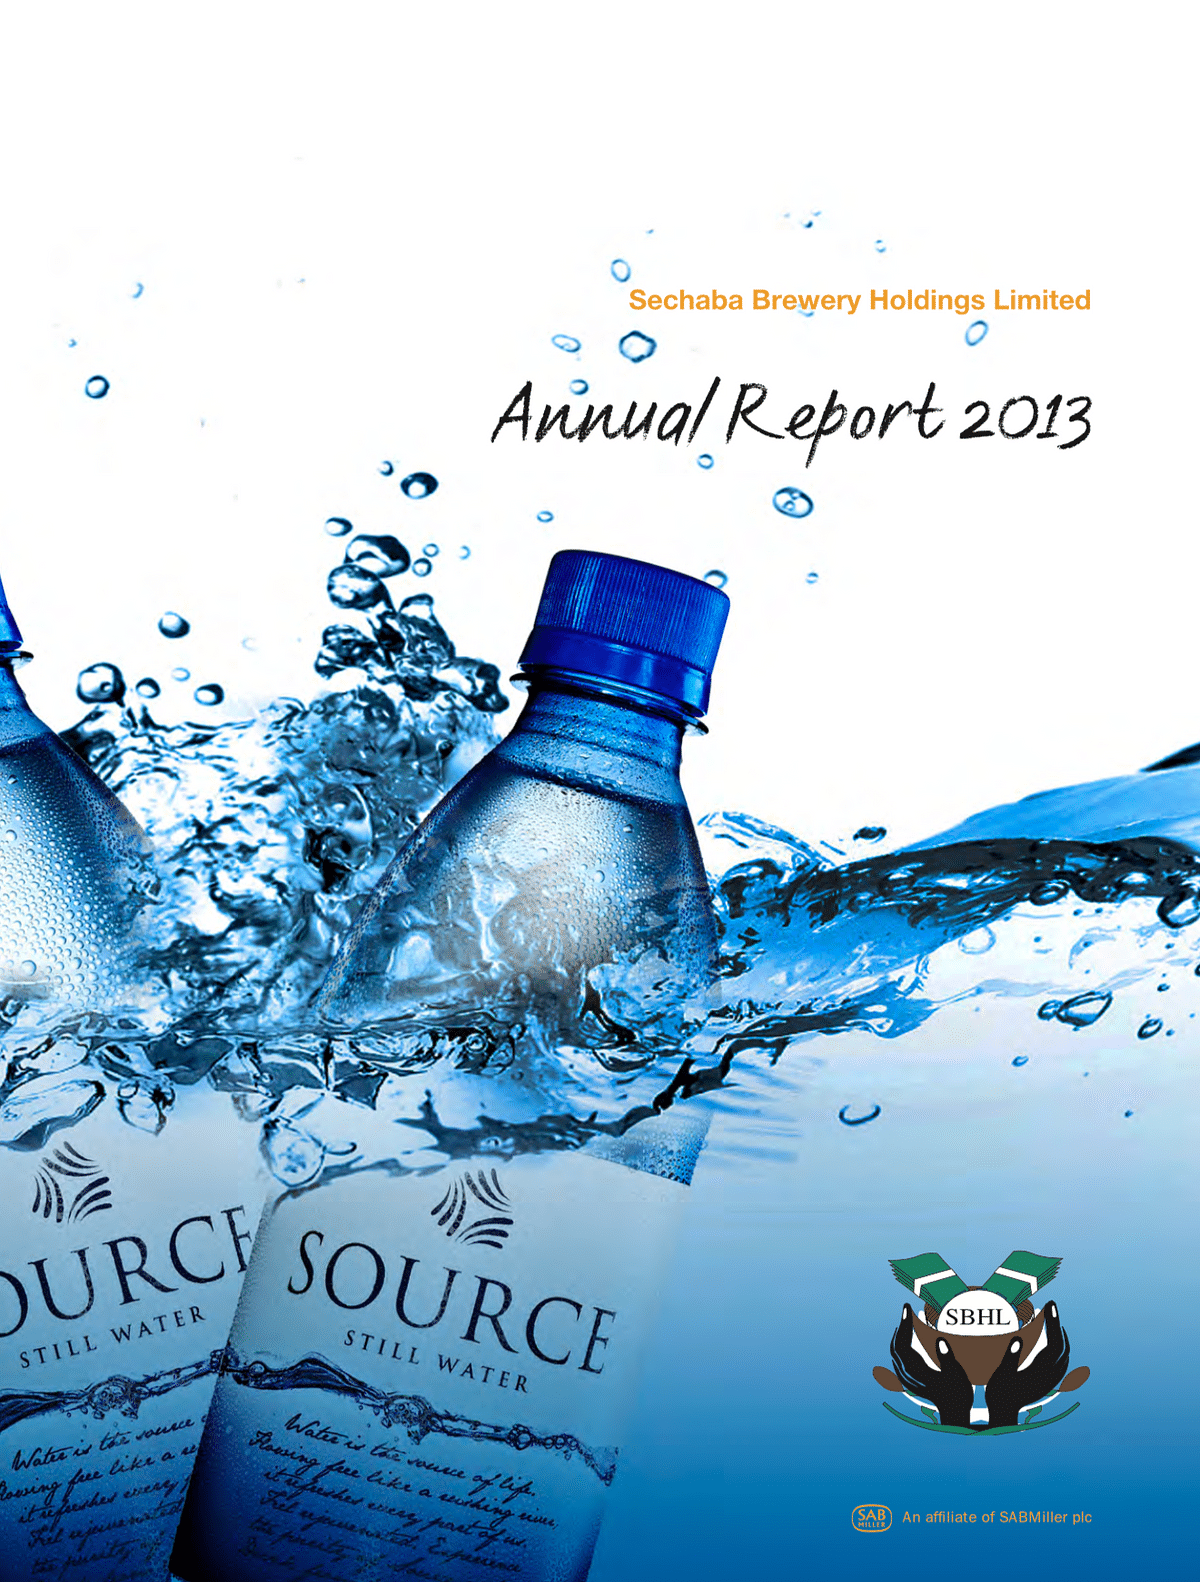 Sechaba Breweries Holdings Limited Annual Report 2013 cover